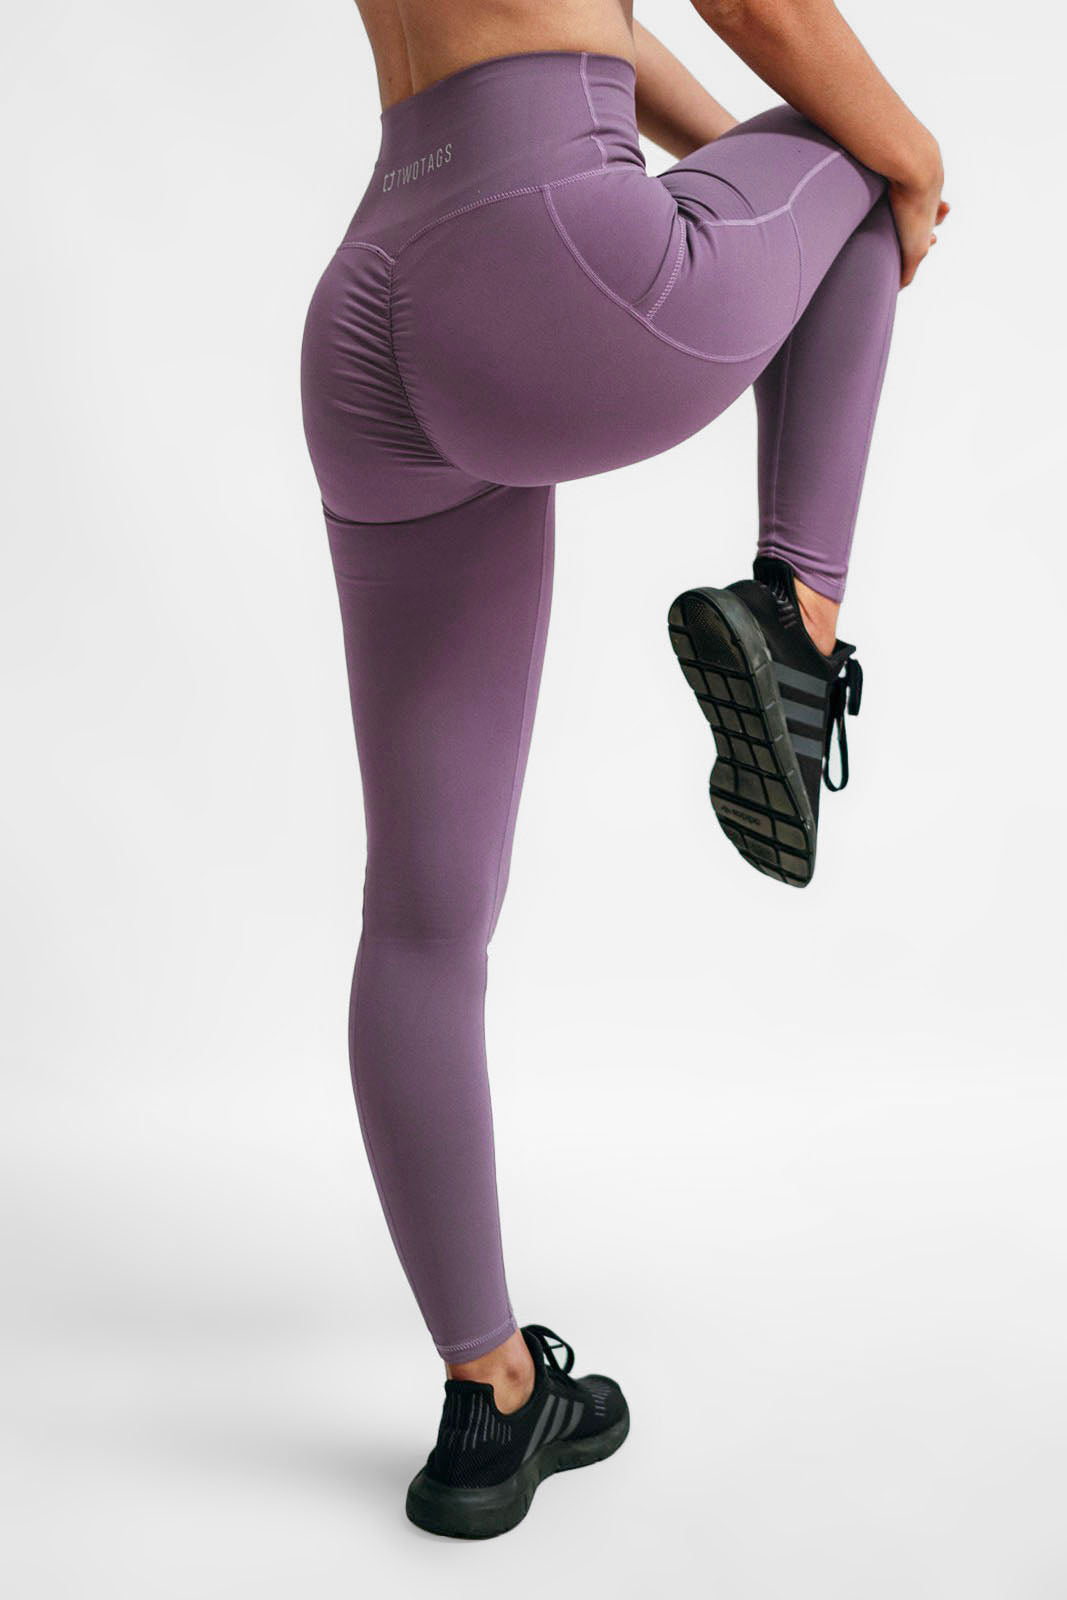 4d815ce04f137 Scrunch Highwaisted Leggings - Lavender – Twotags